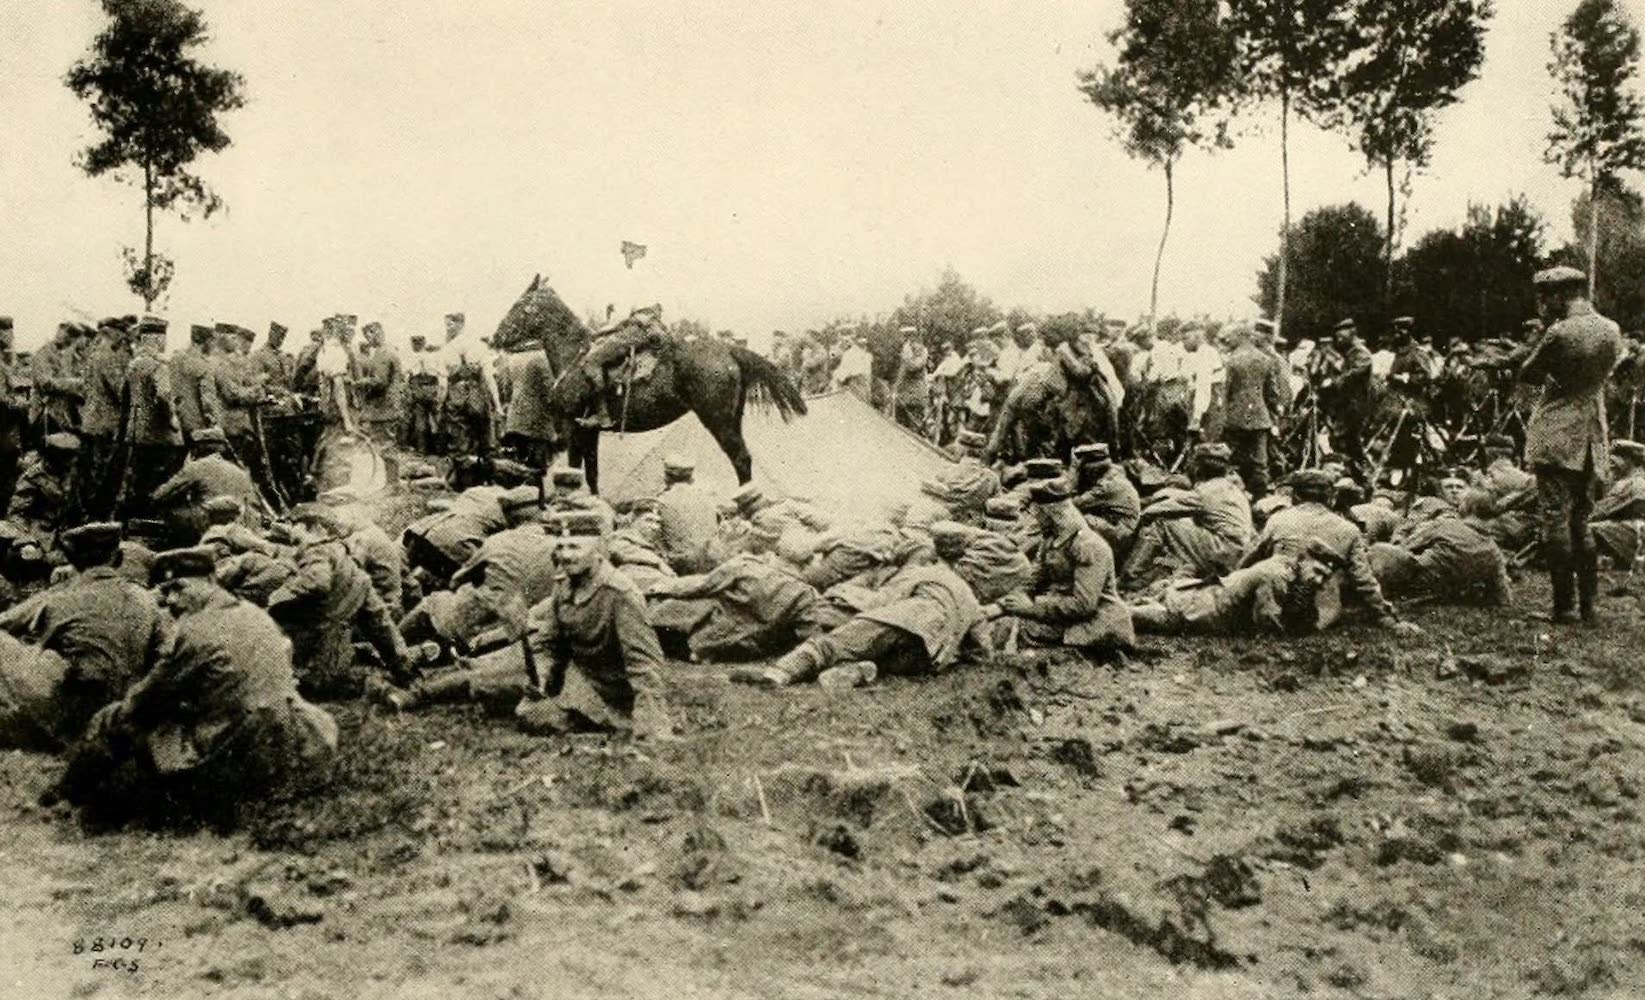 Laird & Lee's World's War Glimpses - The German Bivouac After the Battle of Vise (1914)